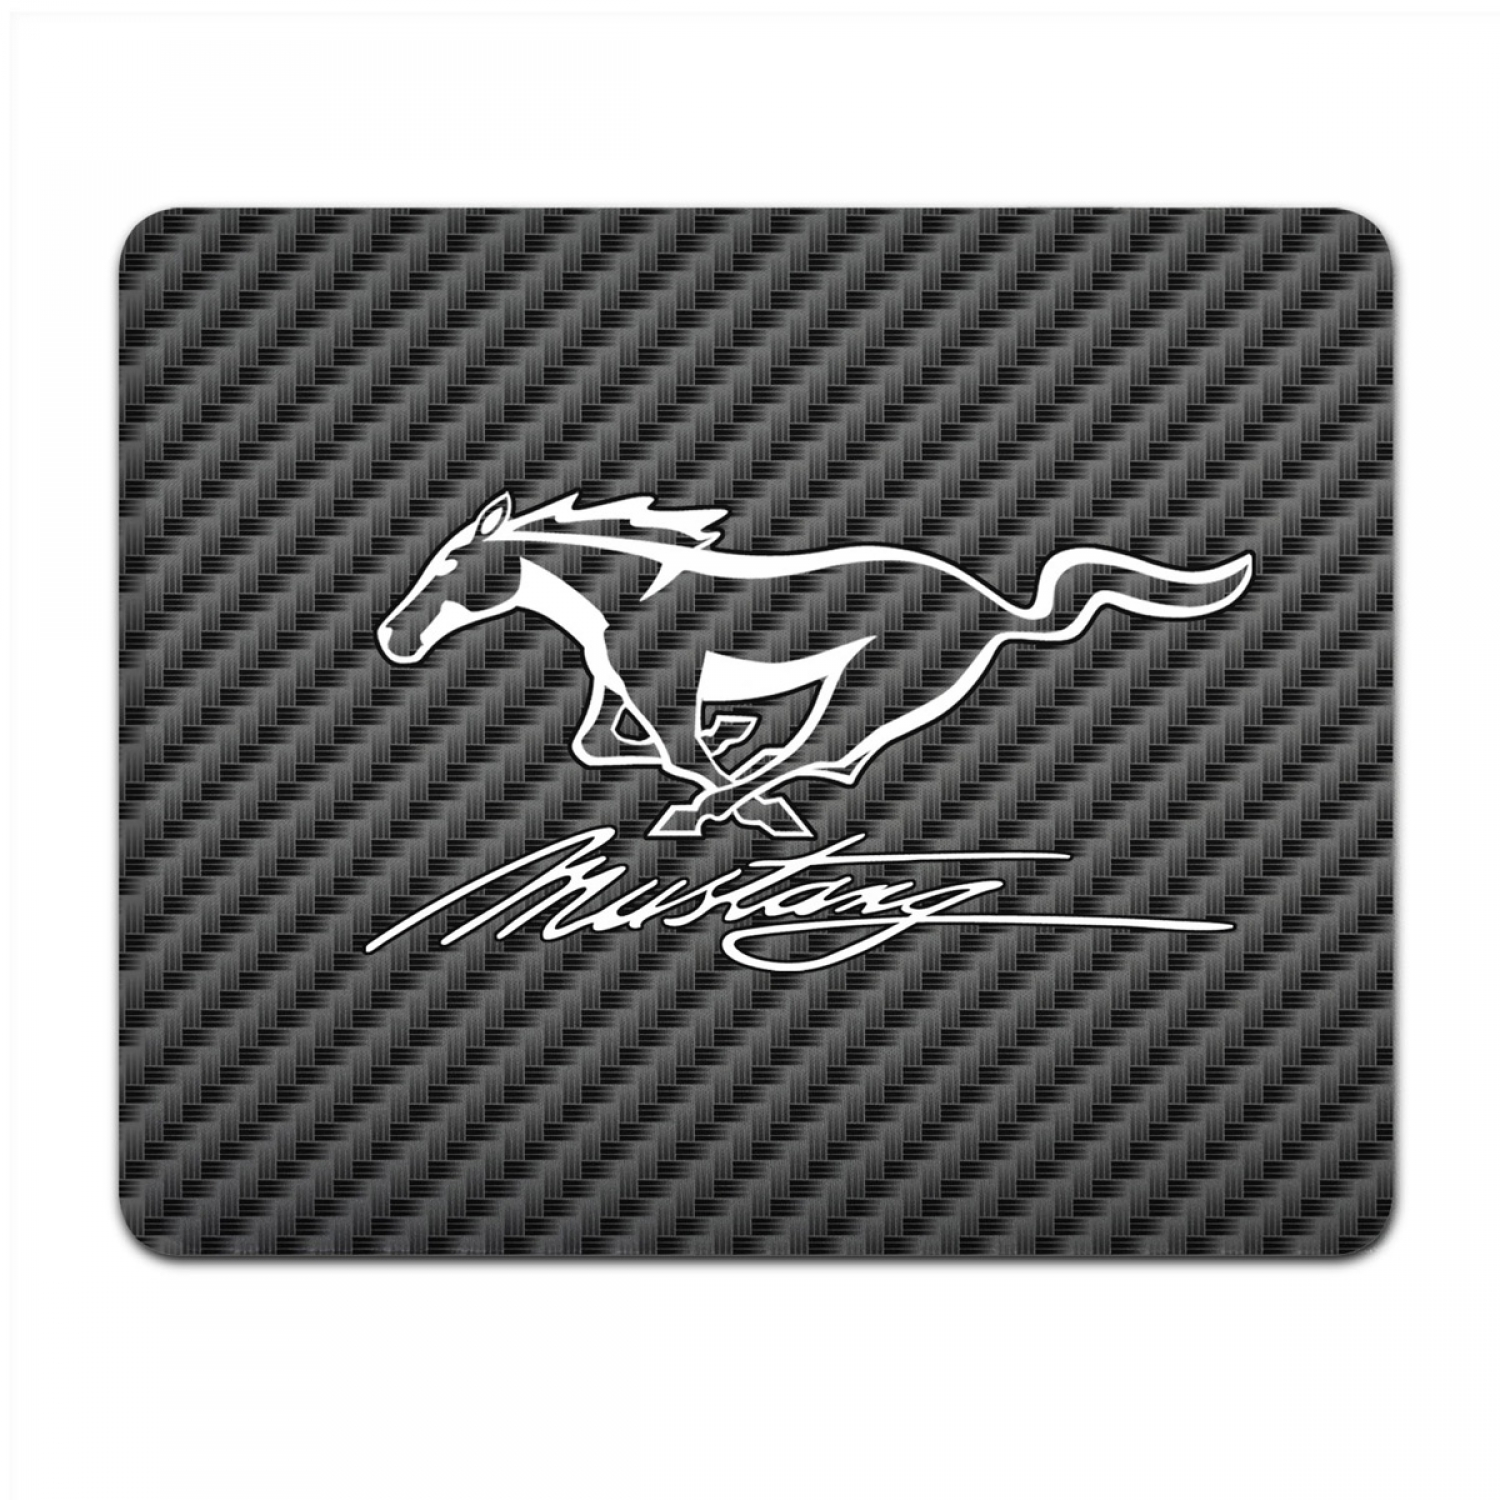 Ford Mustang Script Black Carbon Fiber Texture Graphic PC Mouse Pad